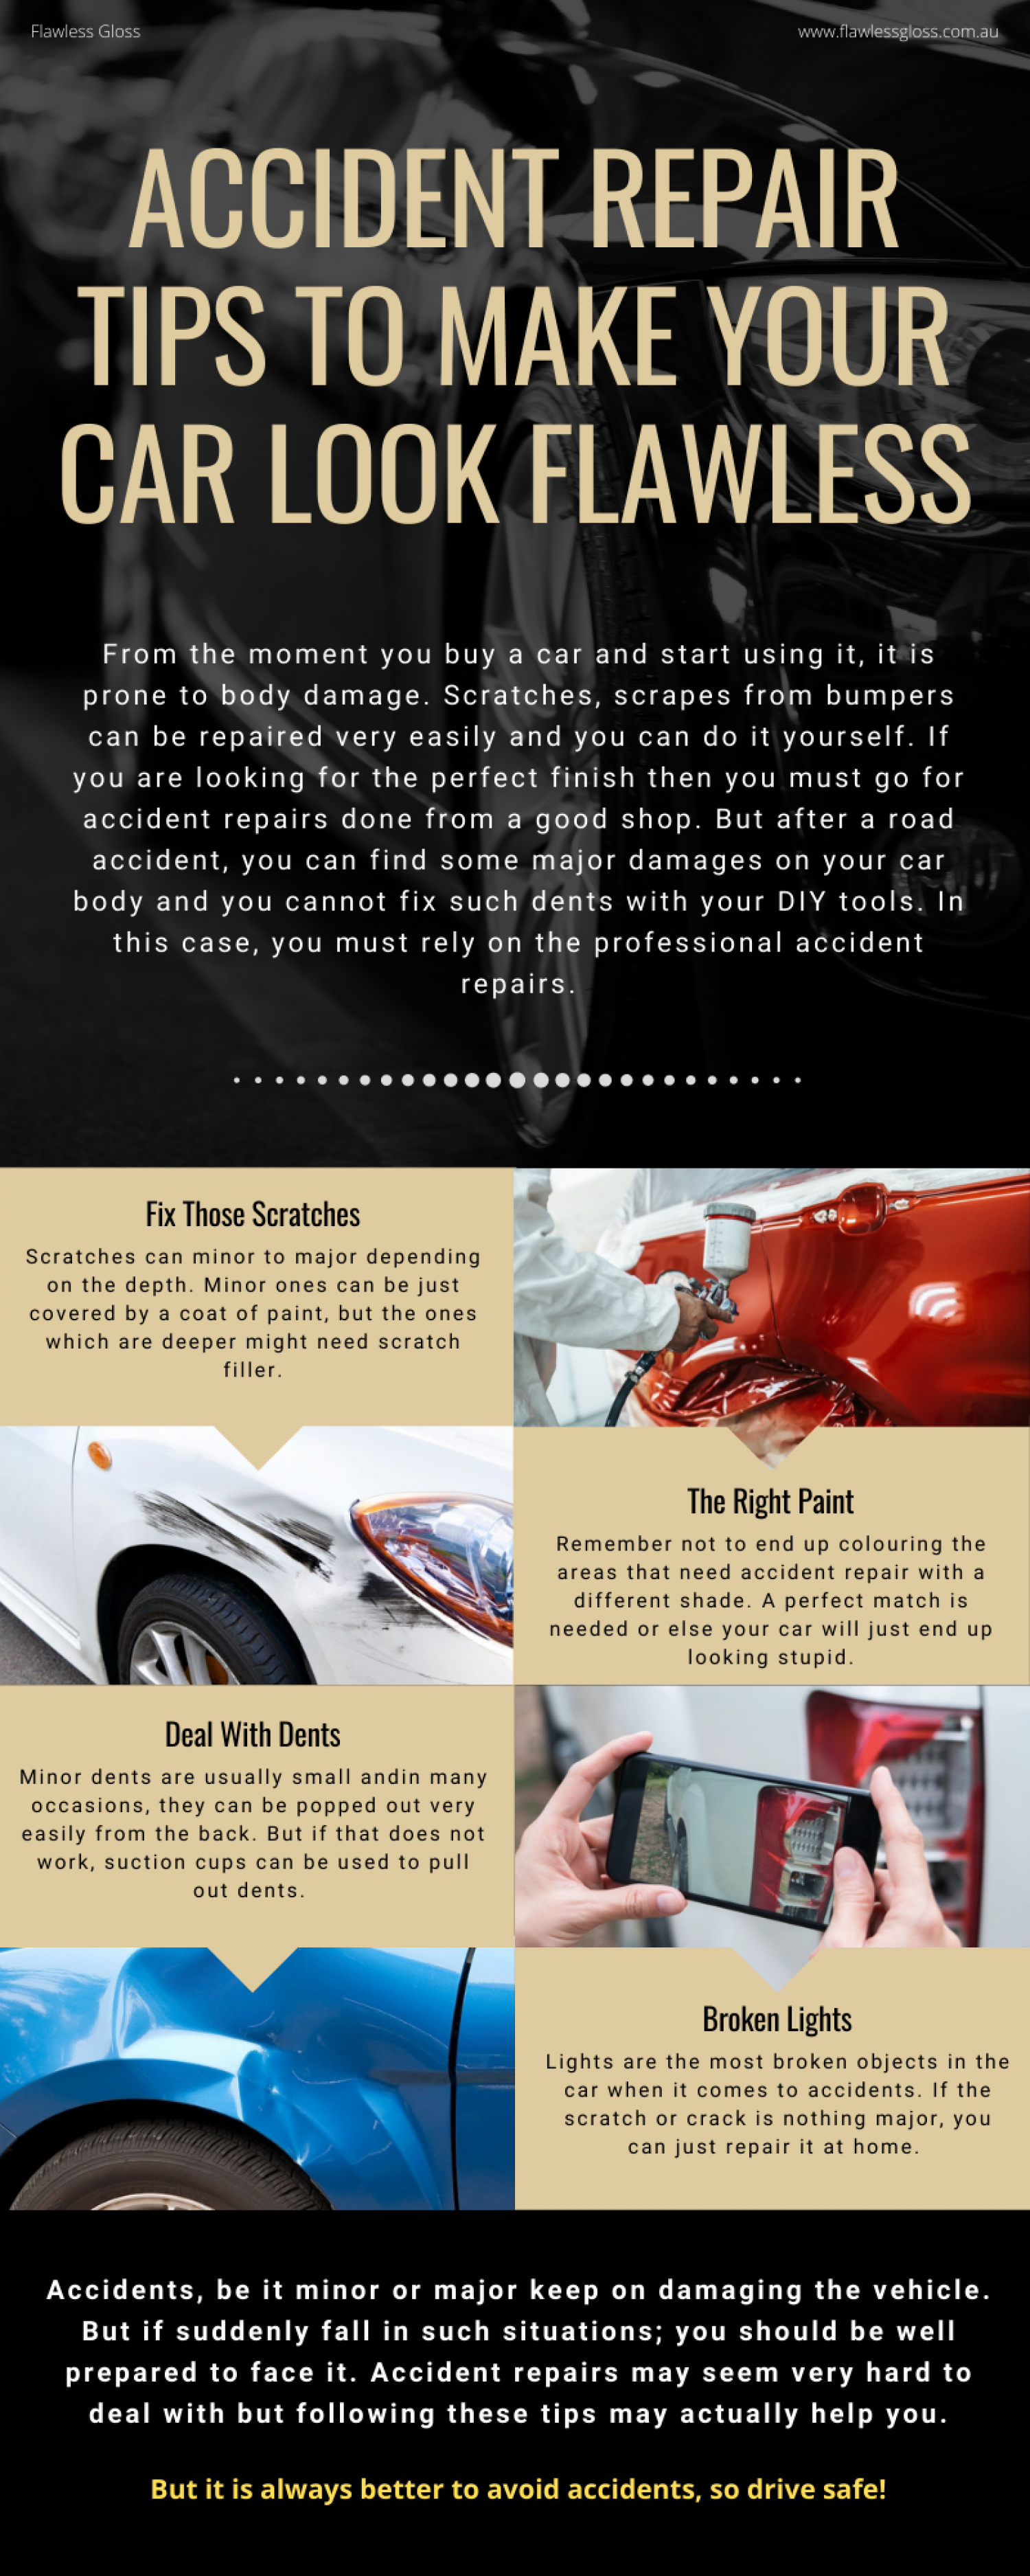 Accident Repair Tips to Make Your Car Look Flawless Infographic